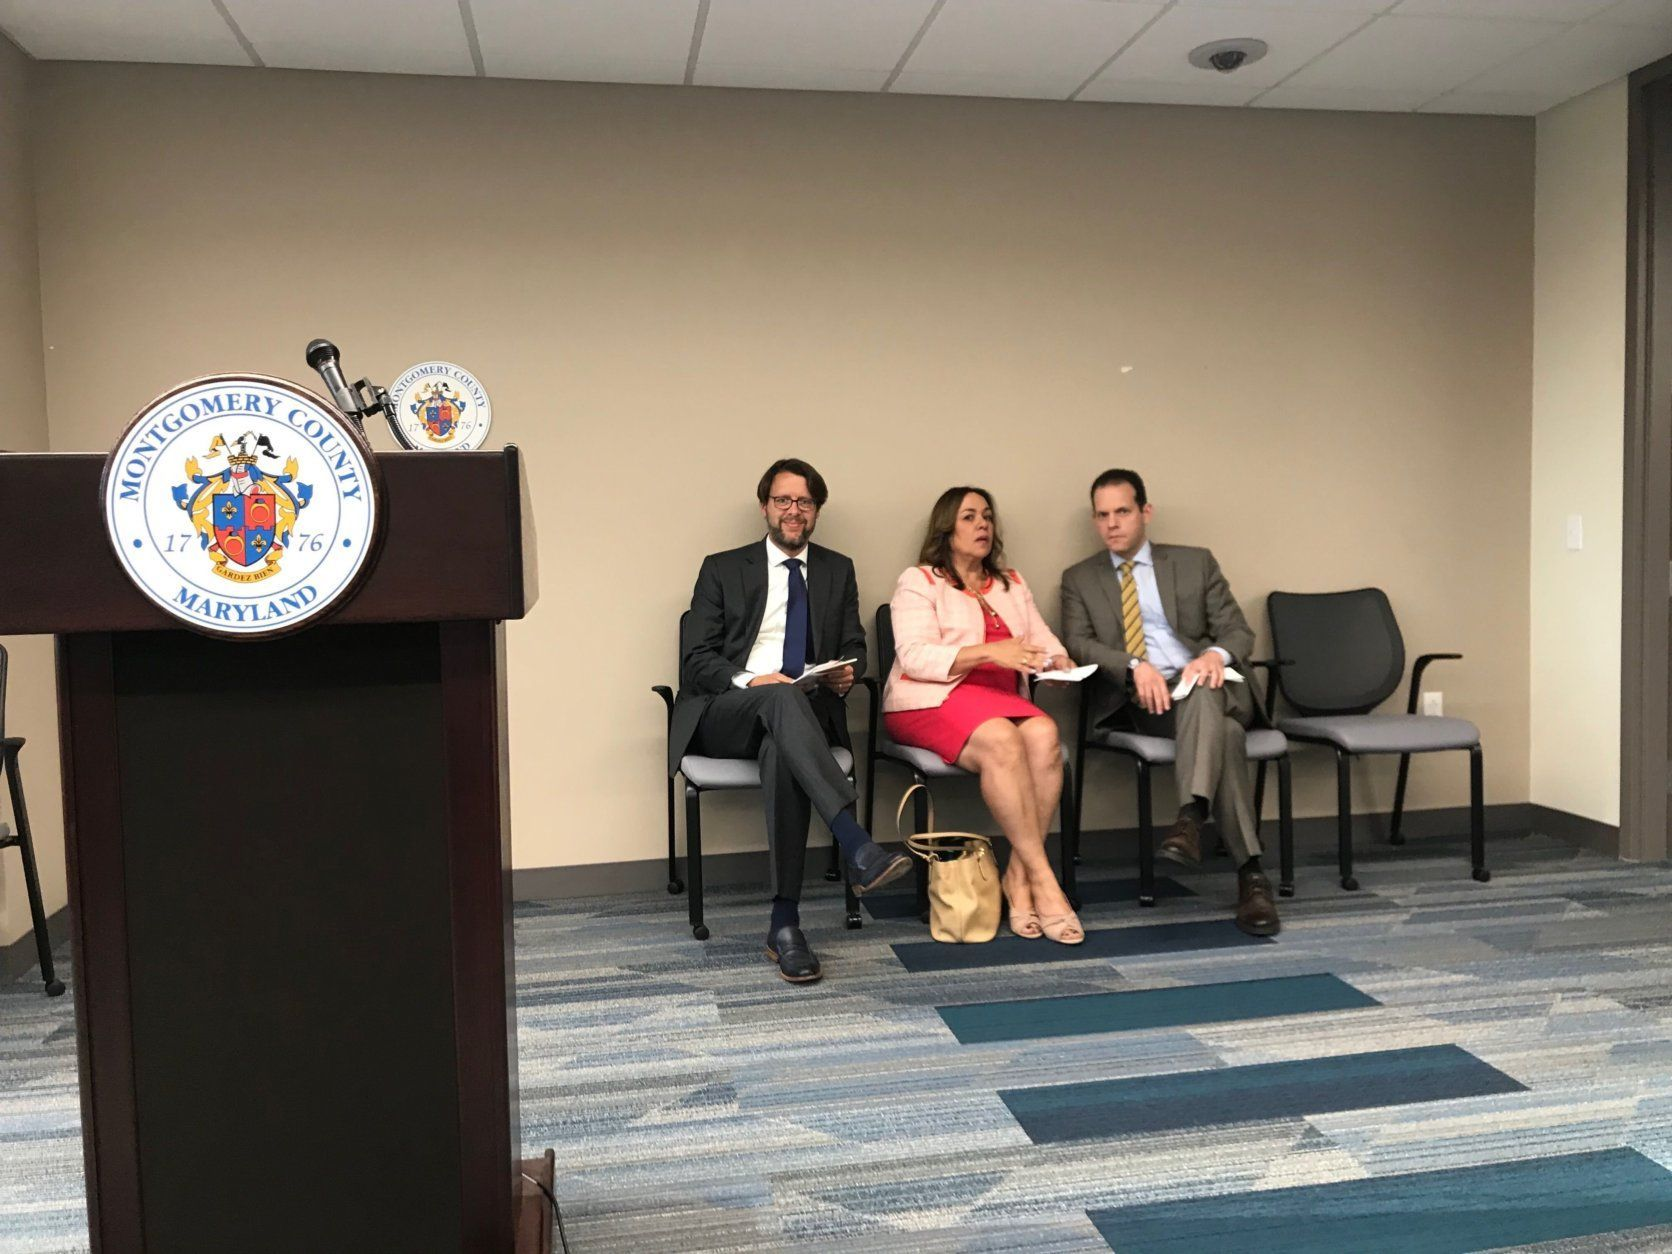 County council member Hans Reimer, Council President Nancy Navarro and Council Member Evan Glass prepare to speak at the meeting. (WTOP/Dick Uliano)